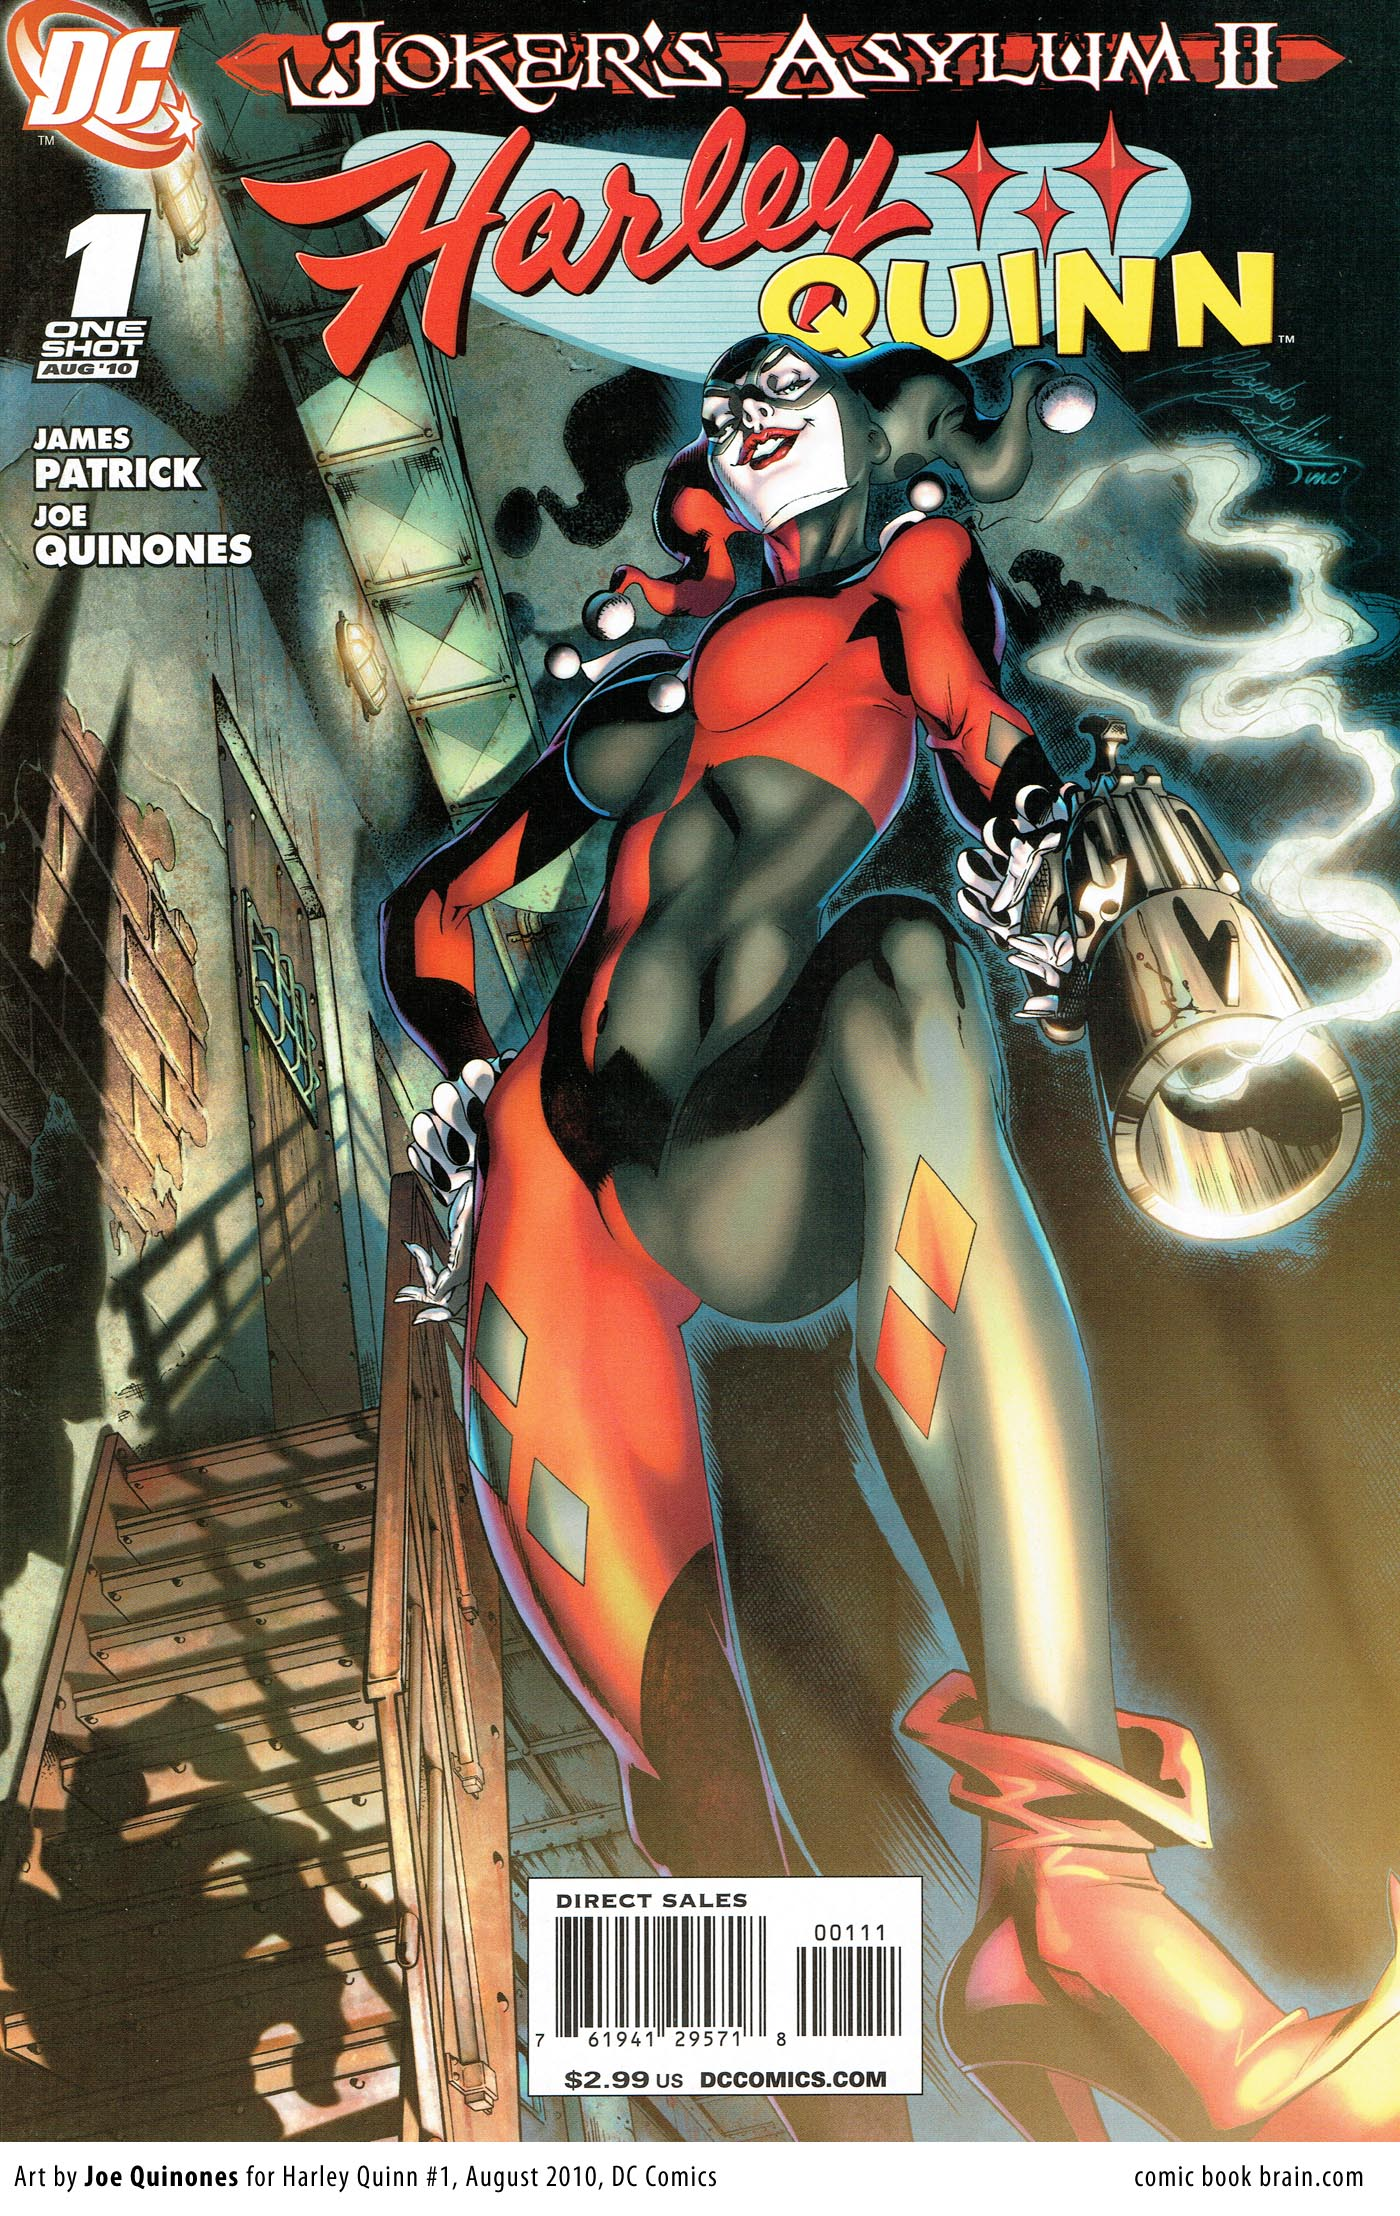 5513b3fc3a679f 10 of the Best Harley Quinn Comic Covers (guess which is the most ...